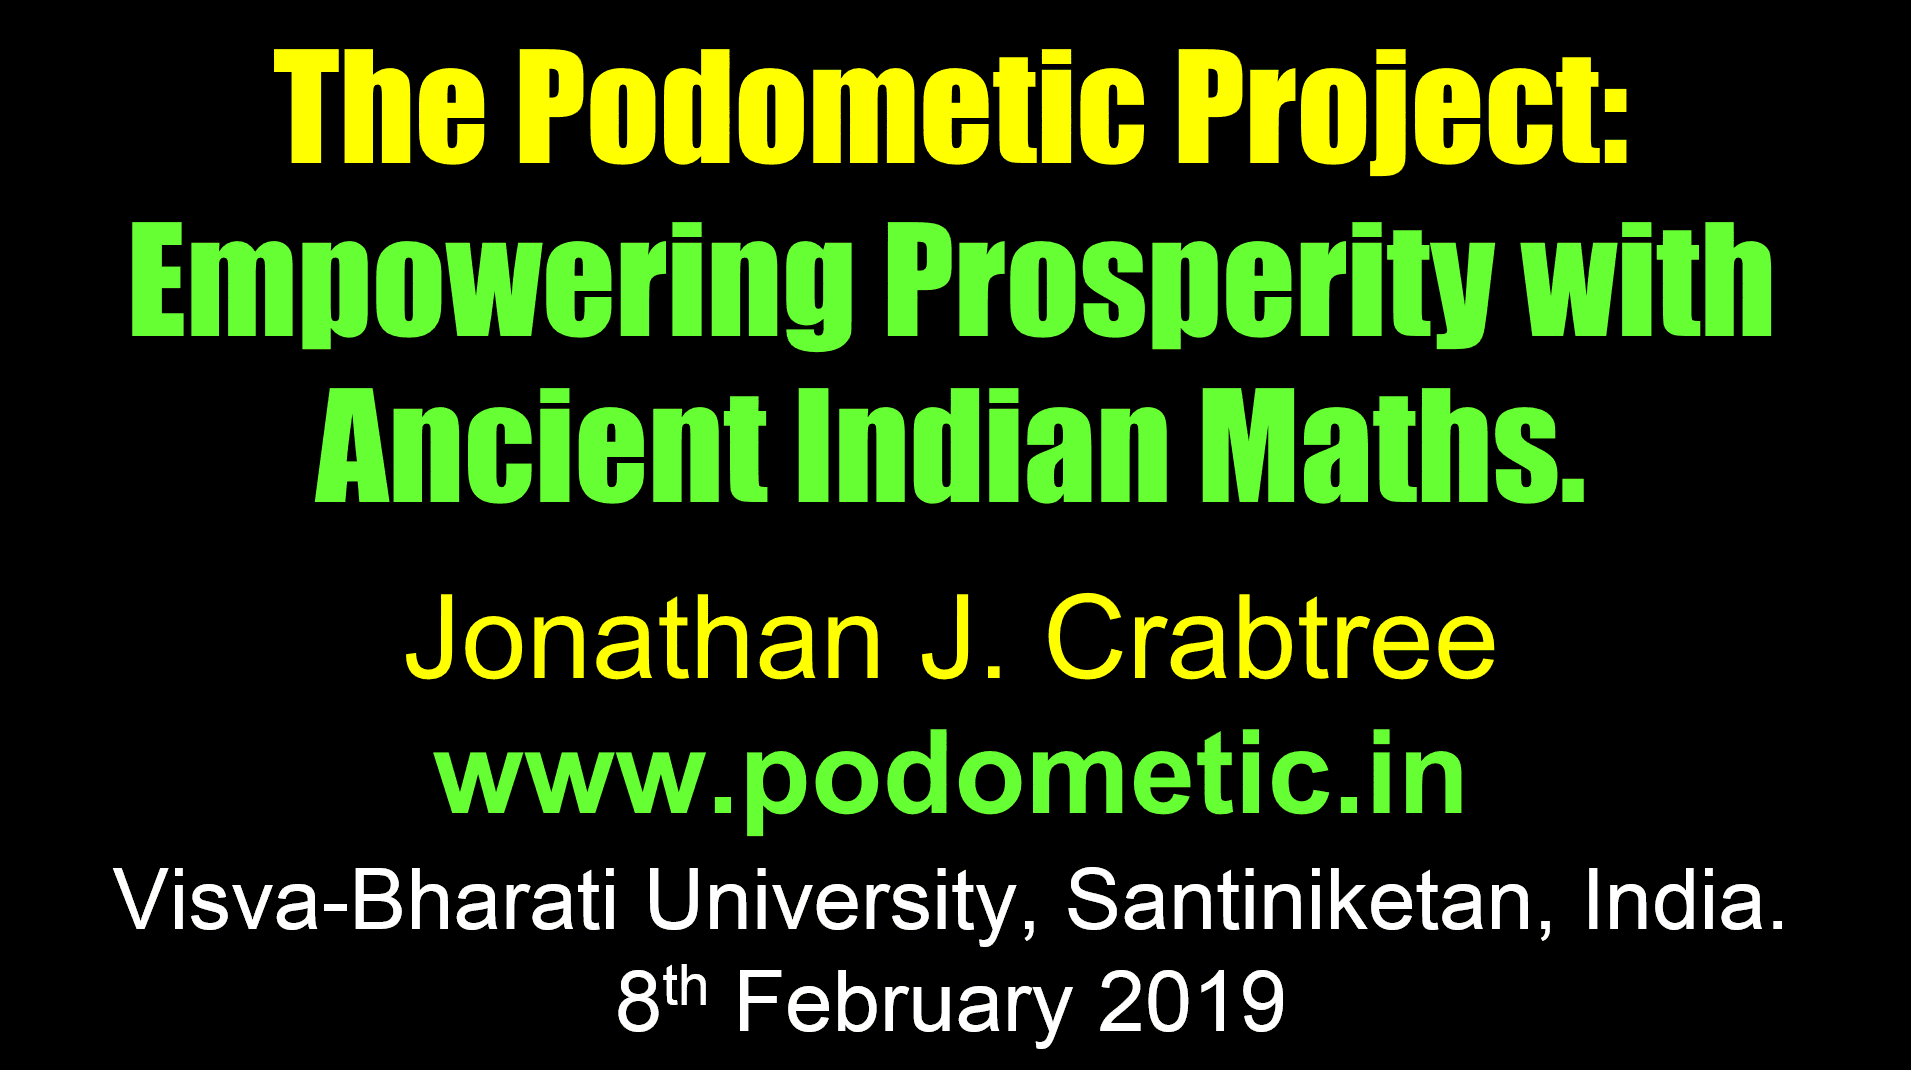 The Podometic Project: Empowering Prosperity with Ancient Indian Maths